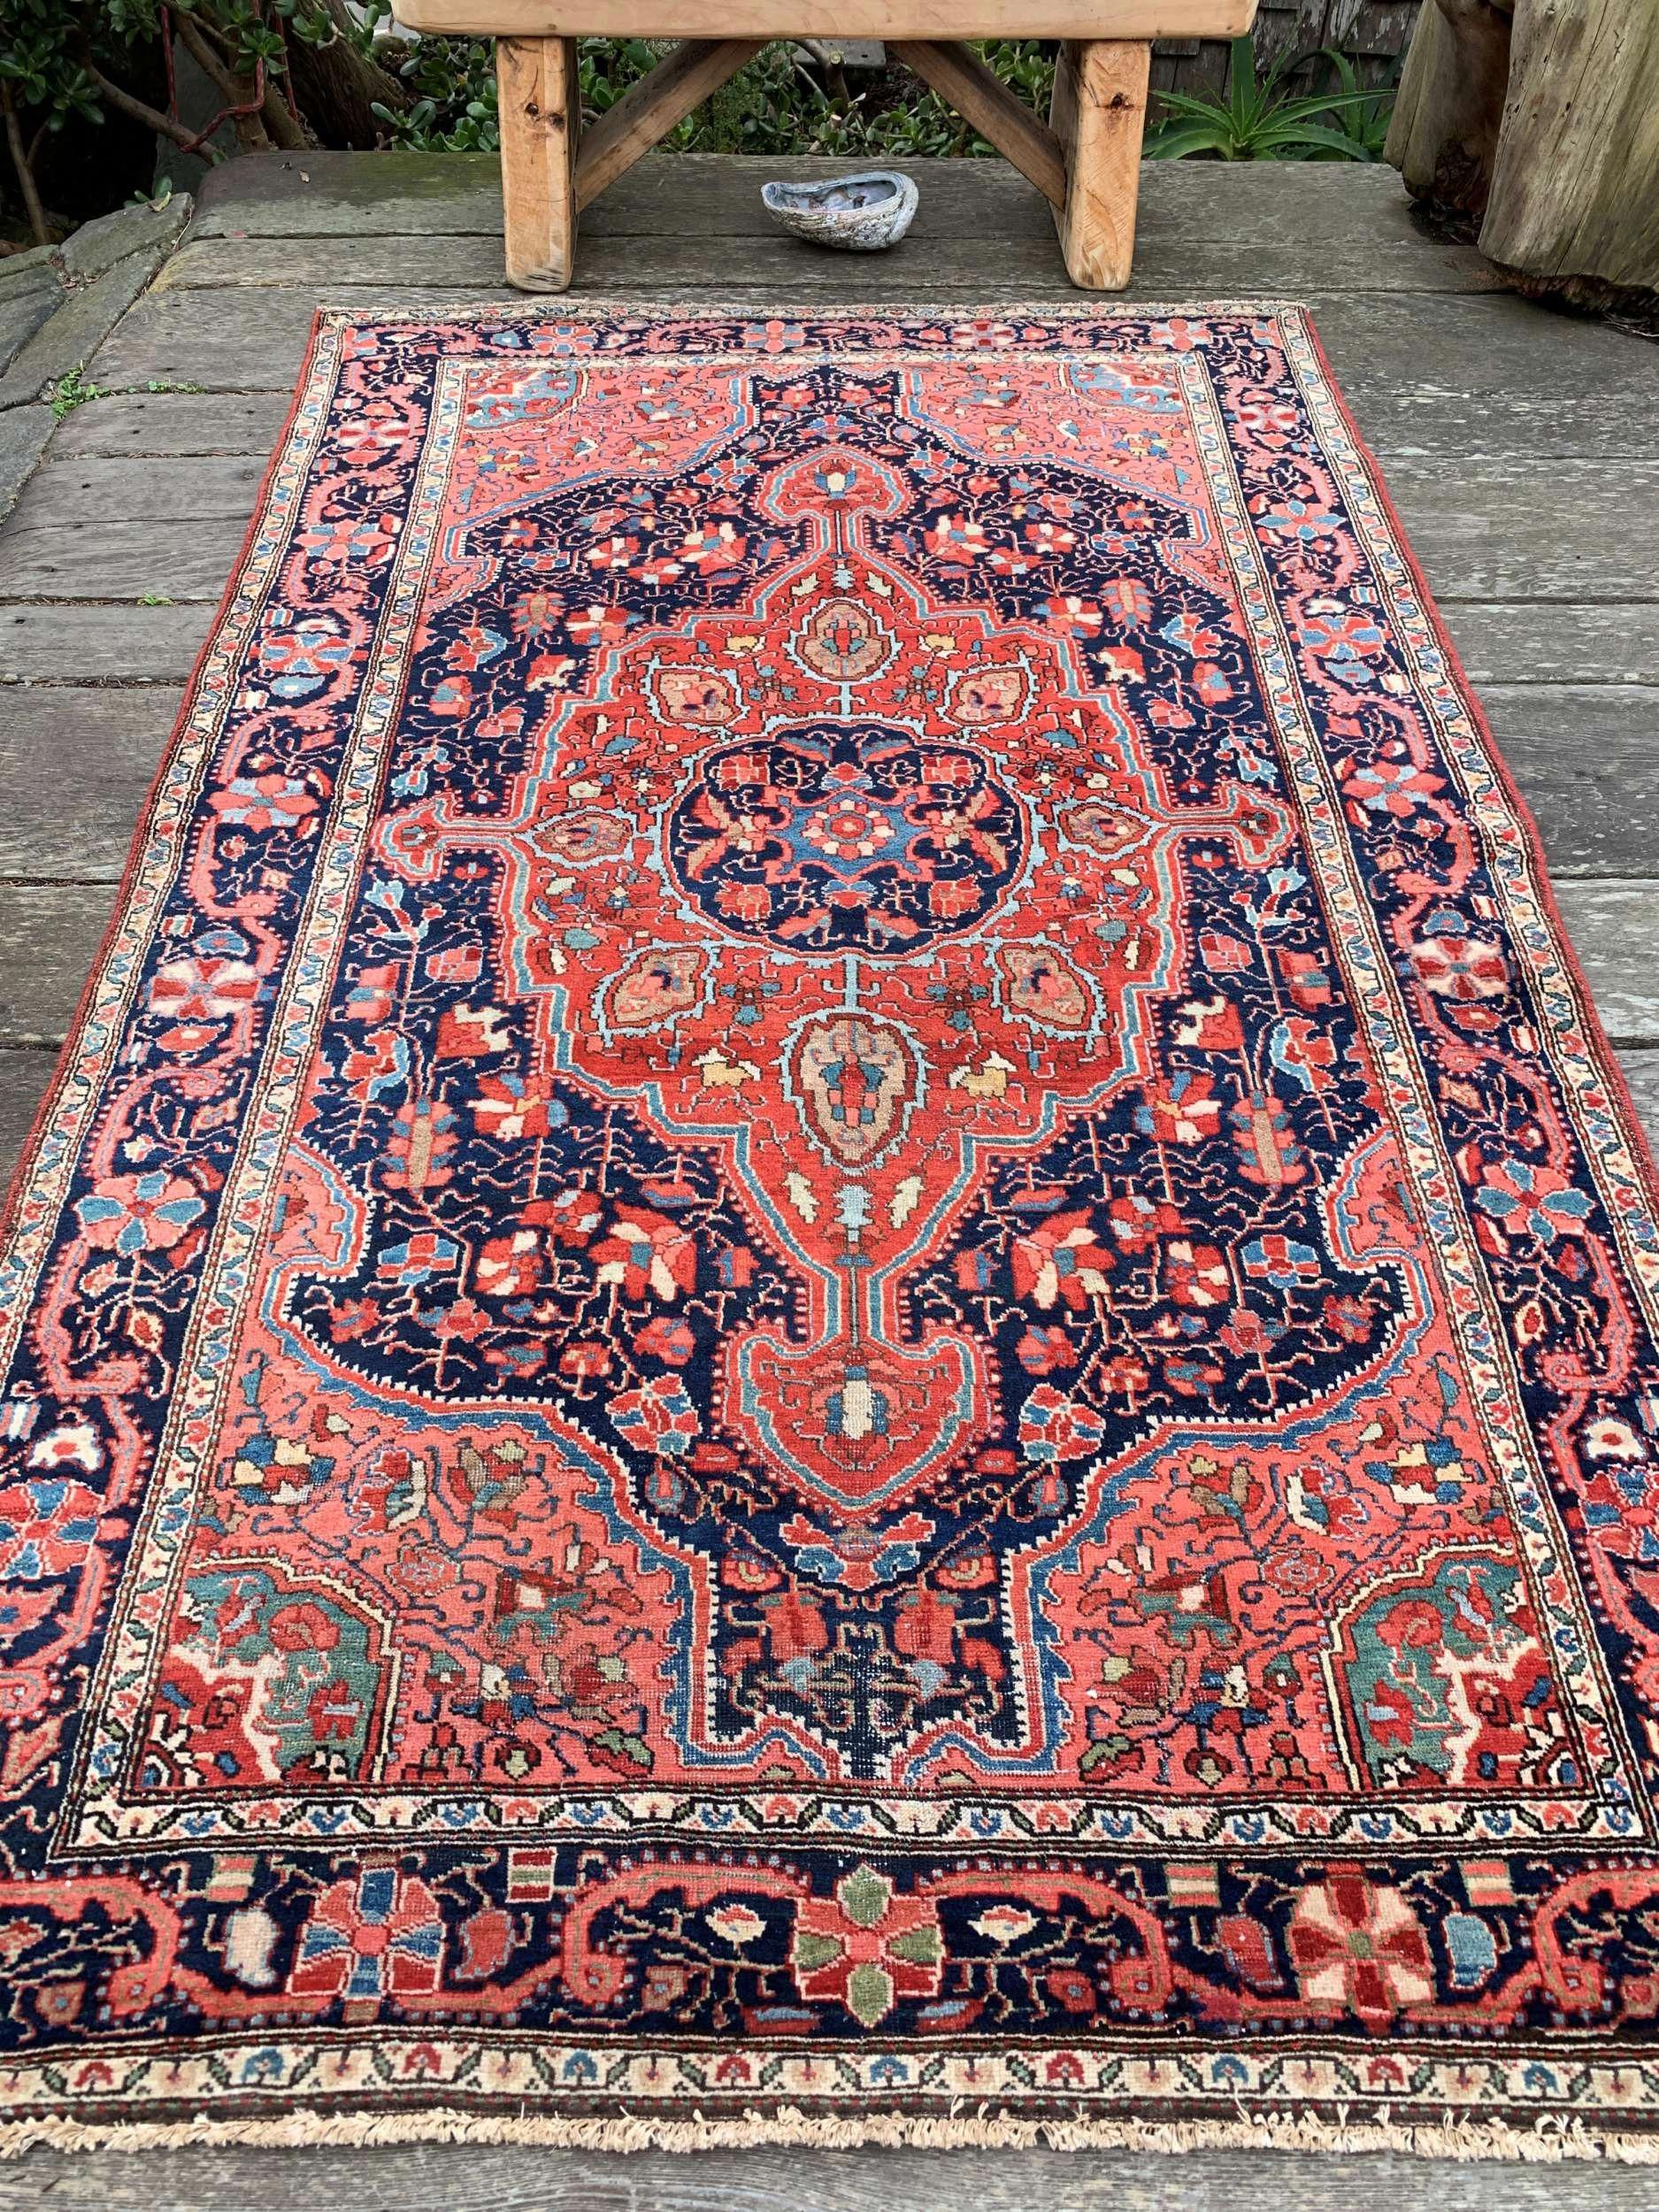 Pin By Persa Kyrtopoulou On Decoration Rugs Carpets In 2020 Buying Carpet Rugs On Carpet Hallway Carpet Runners